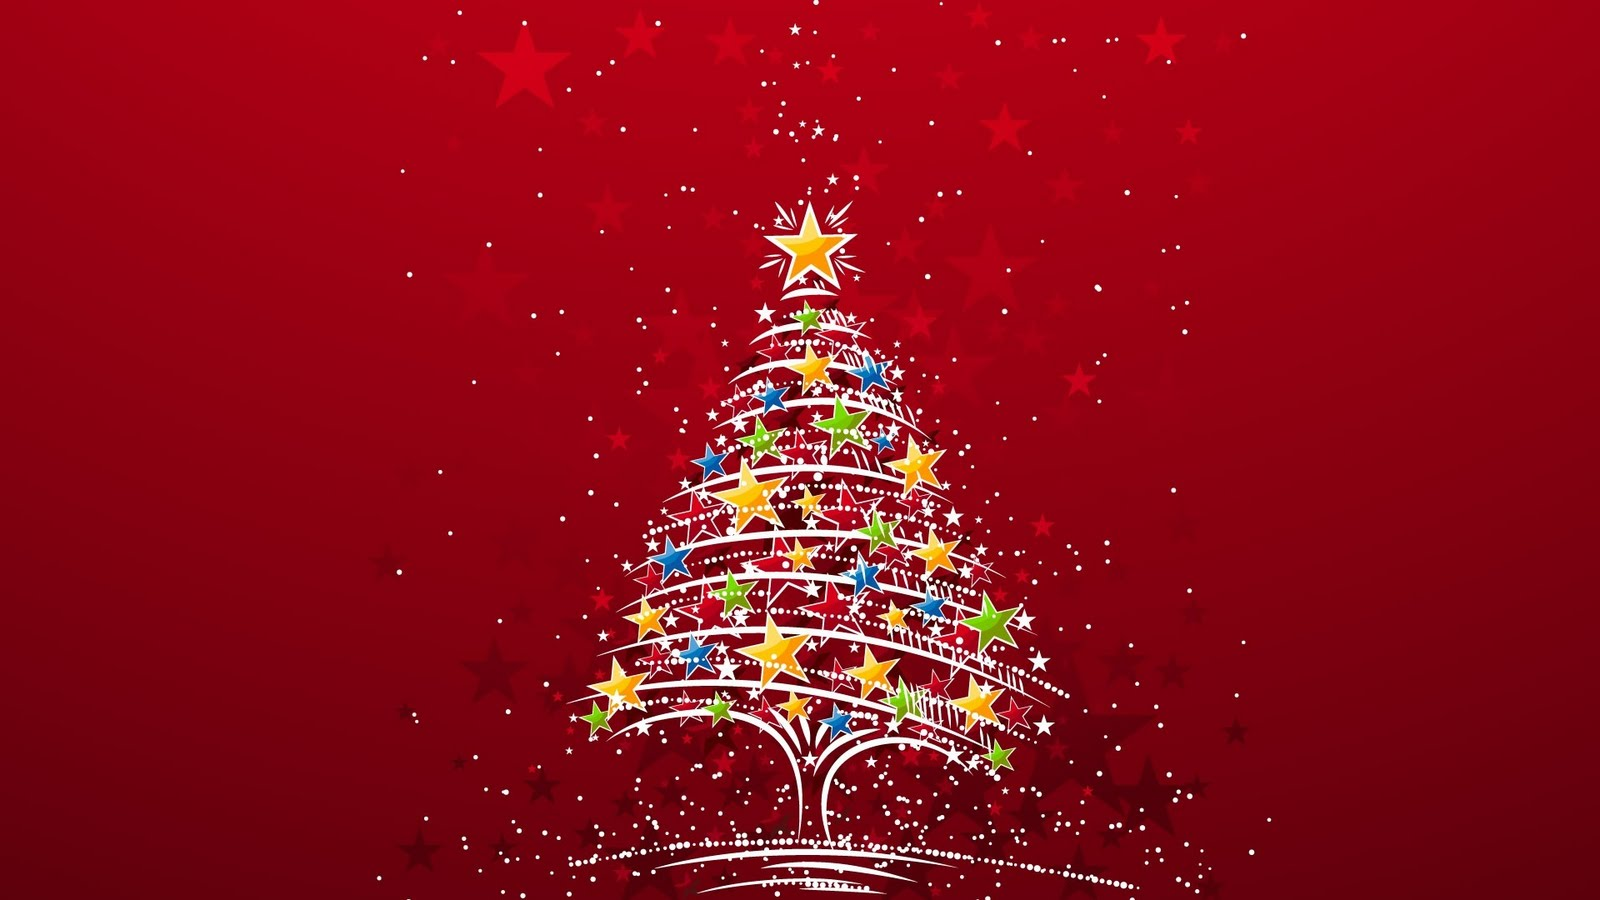 christmas tree colorful wallpapers - Wallpapers for Galaxy Colorful Christmas Tree